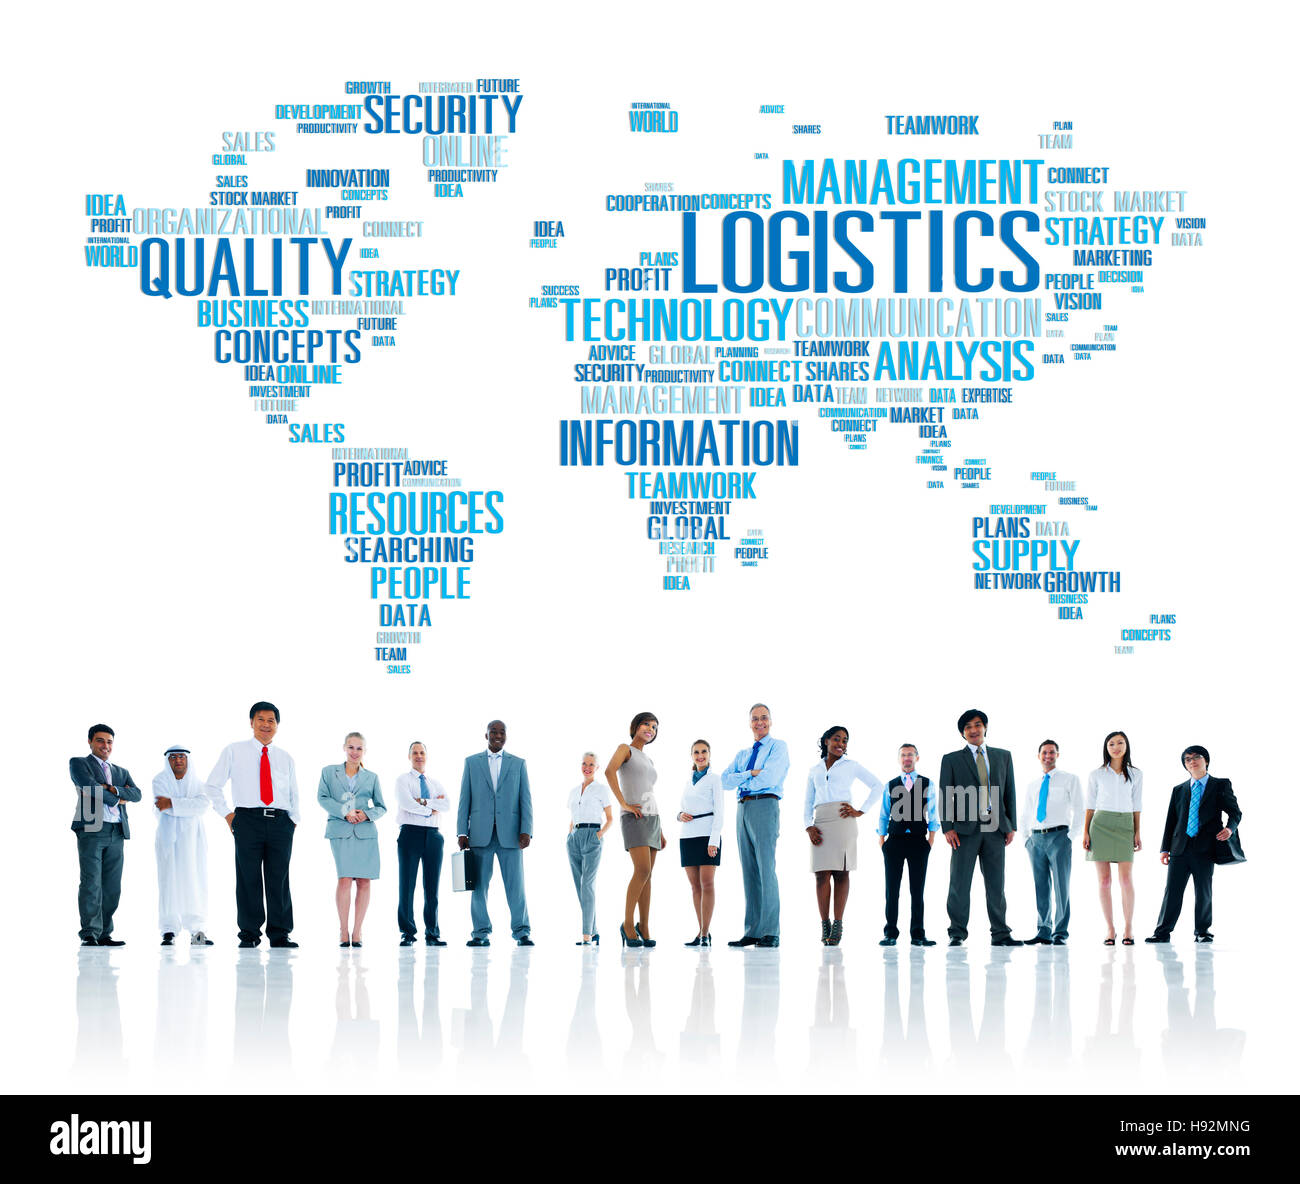 Logistics Management Freight Service Production Concept - Stock Image